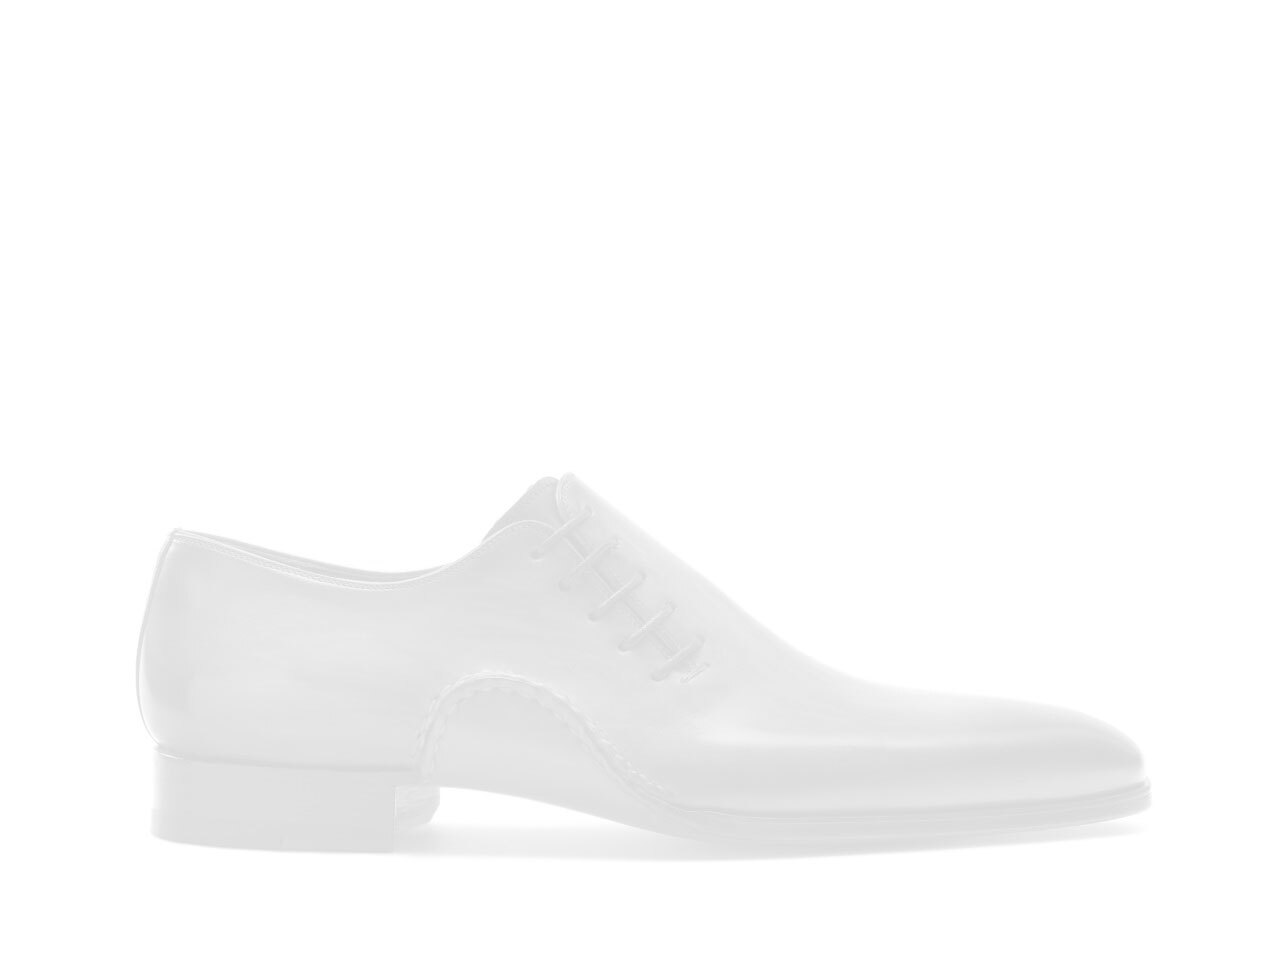 Side view of the Magnanni Sona White Men's Sneakers